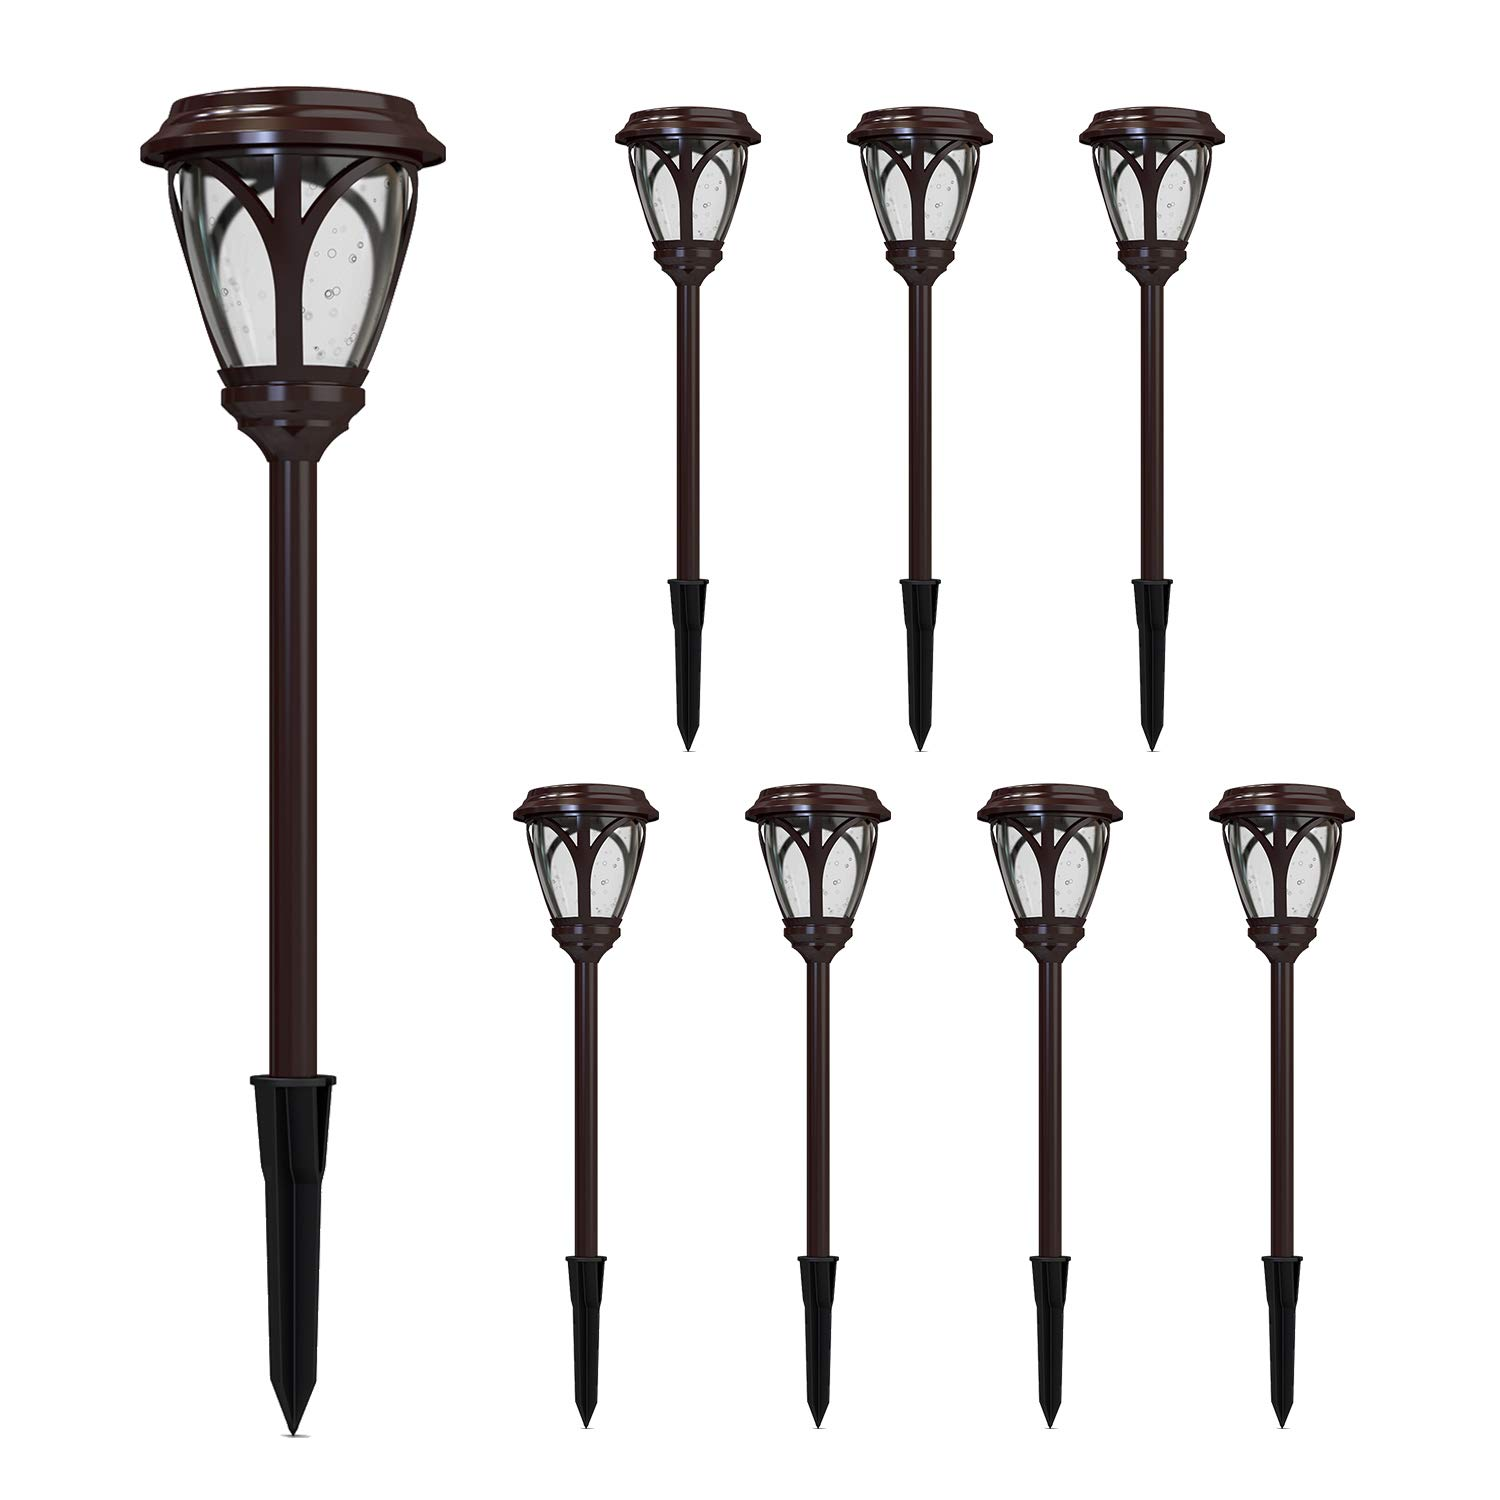 Malibu Kristi Collection LED 0.8W Low Voltage Outdoor Garden Light Landscape Lights Pathway Light for Lawn, Patio, Yard, Walkway, Driveway 8PK 8422-3103-08